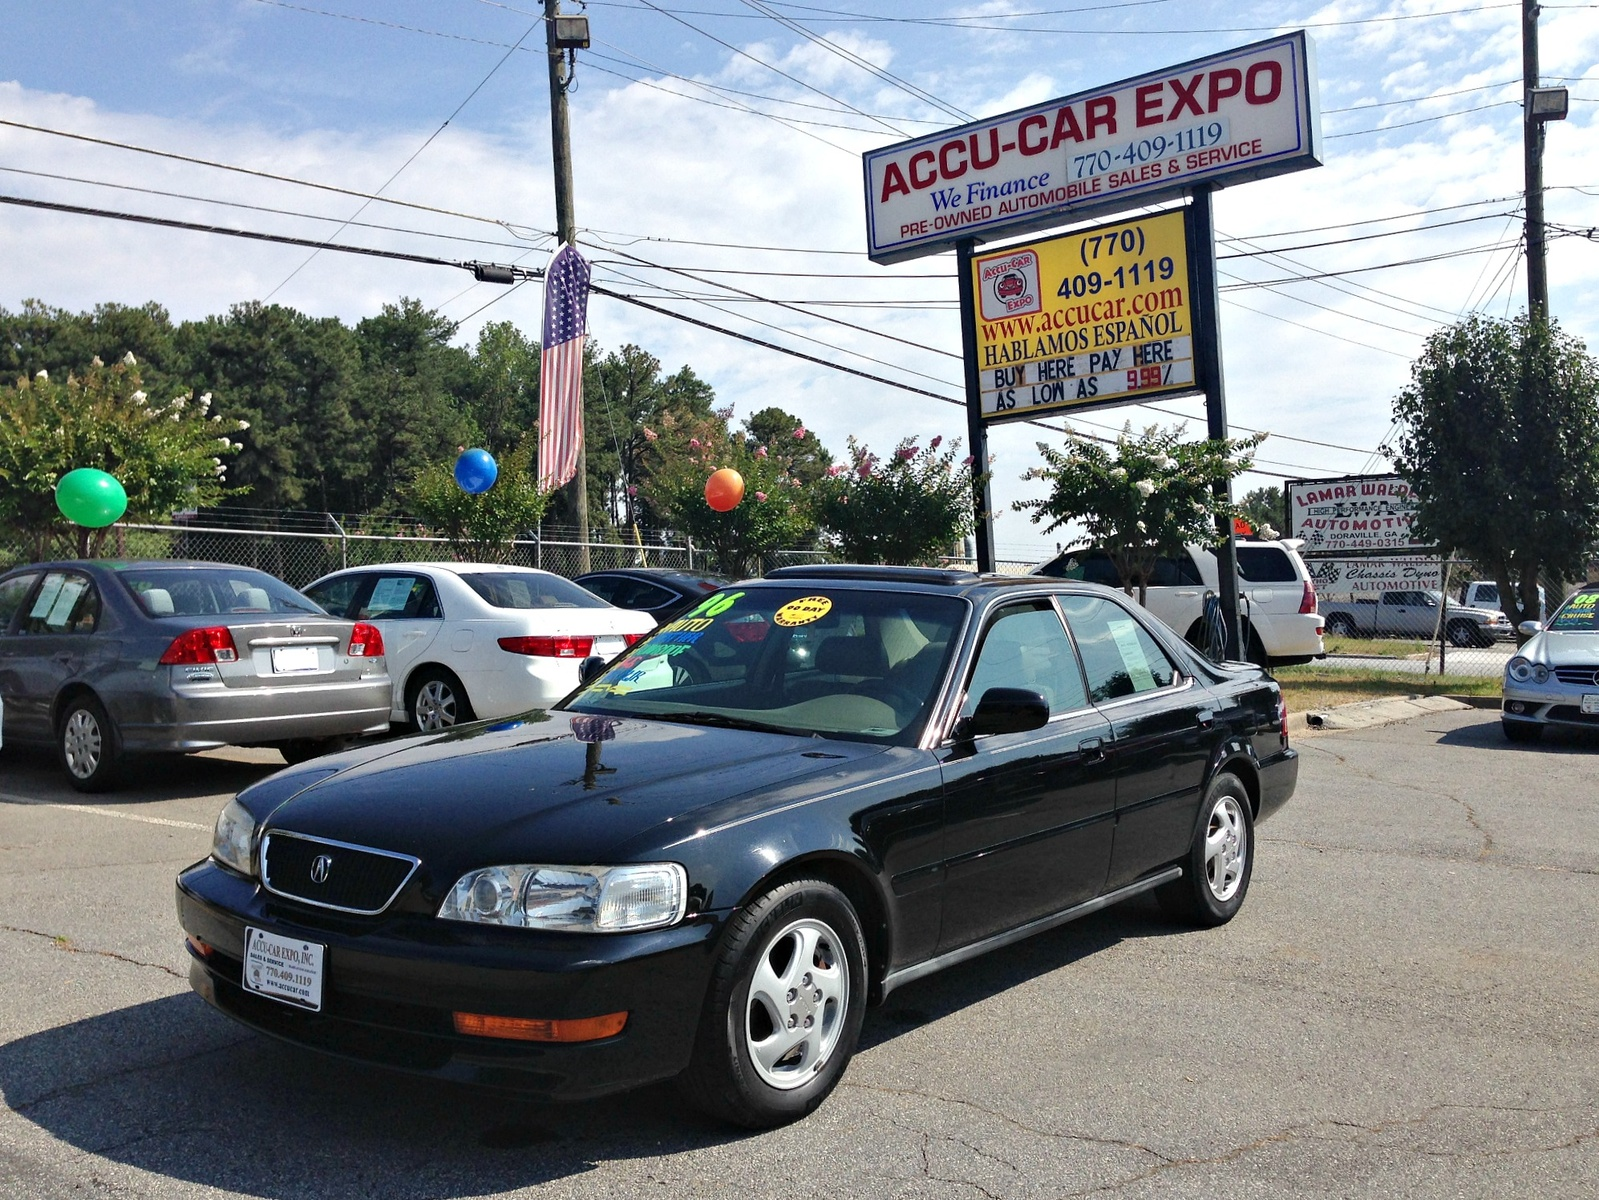 1996 Acura TL 3.2 Sedan picture